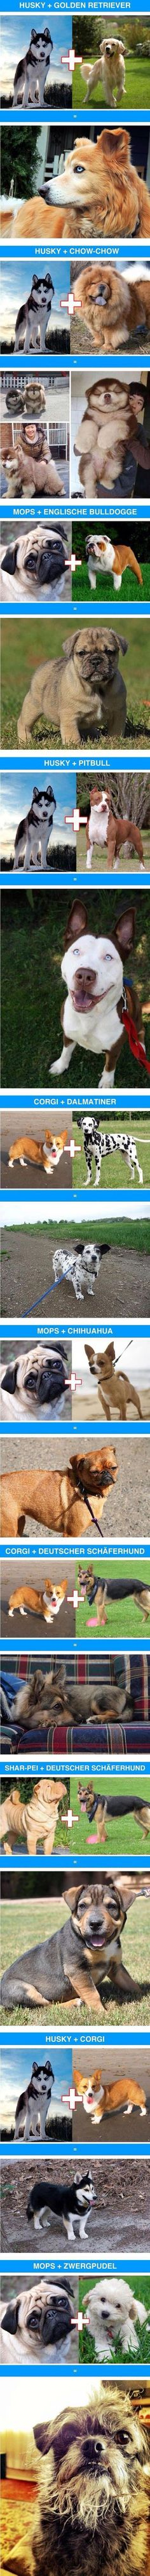 dog breeds mixed with others. Some dog breeds mixed with others.Some dog breeds mixed with others. Cute Funny Animals, Funny Animal Pictures, Cute Baby Animals, Funny Dogs, Animals And Pets, Fail Pictures, Small Animals, Weird Pictures, Cute Puppies